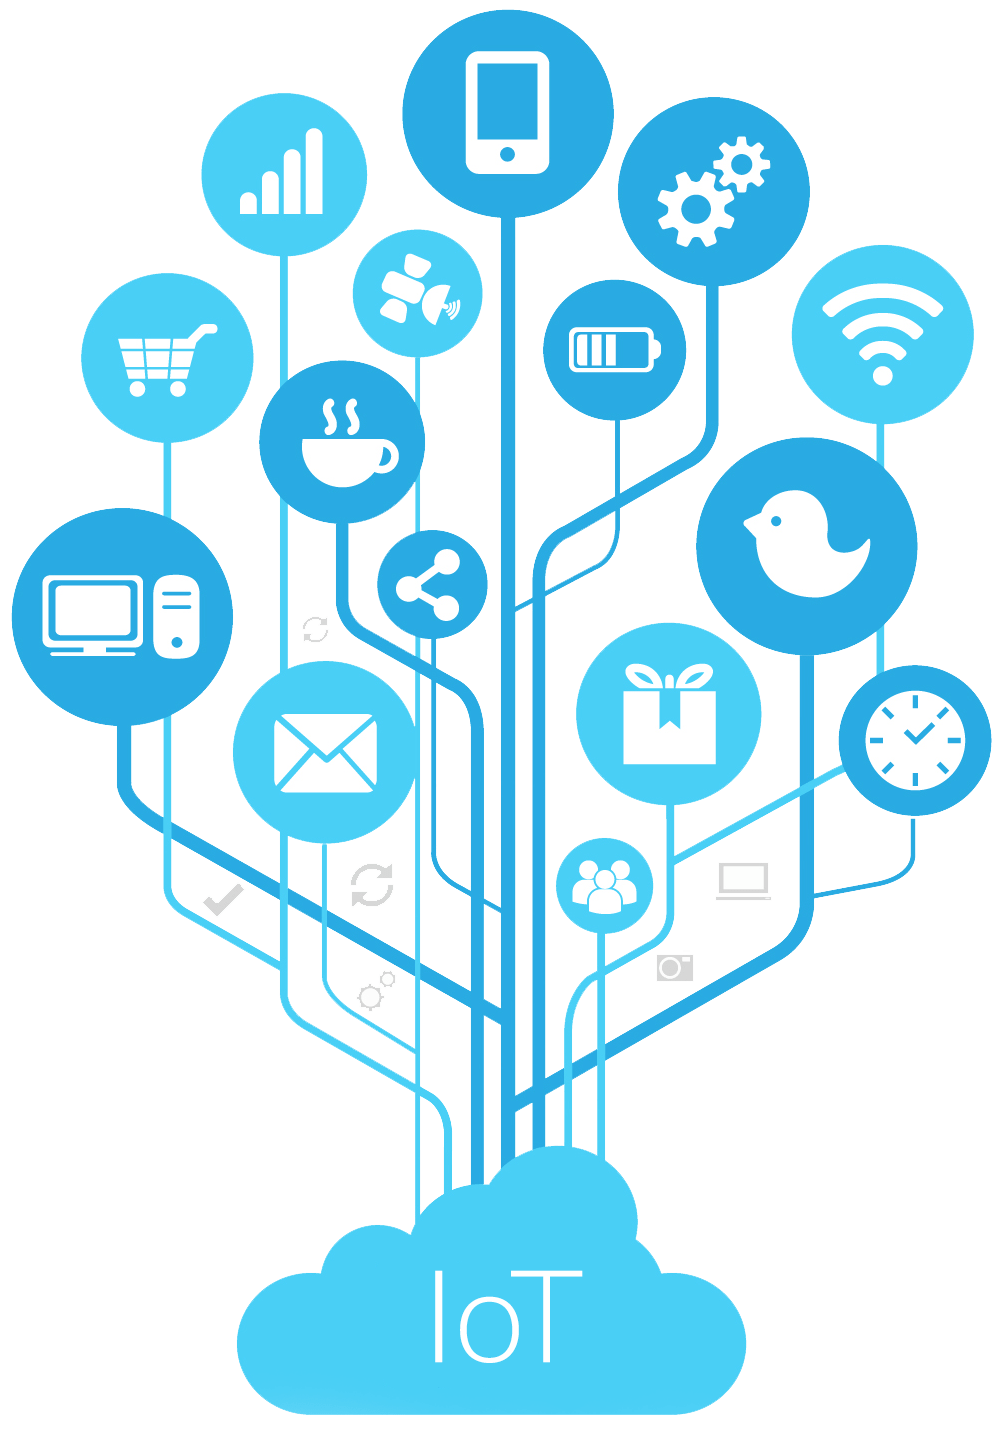 Iot Application Security